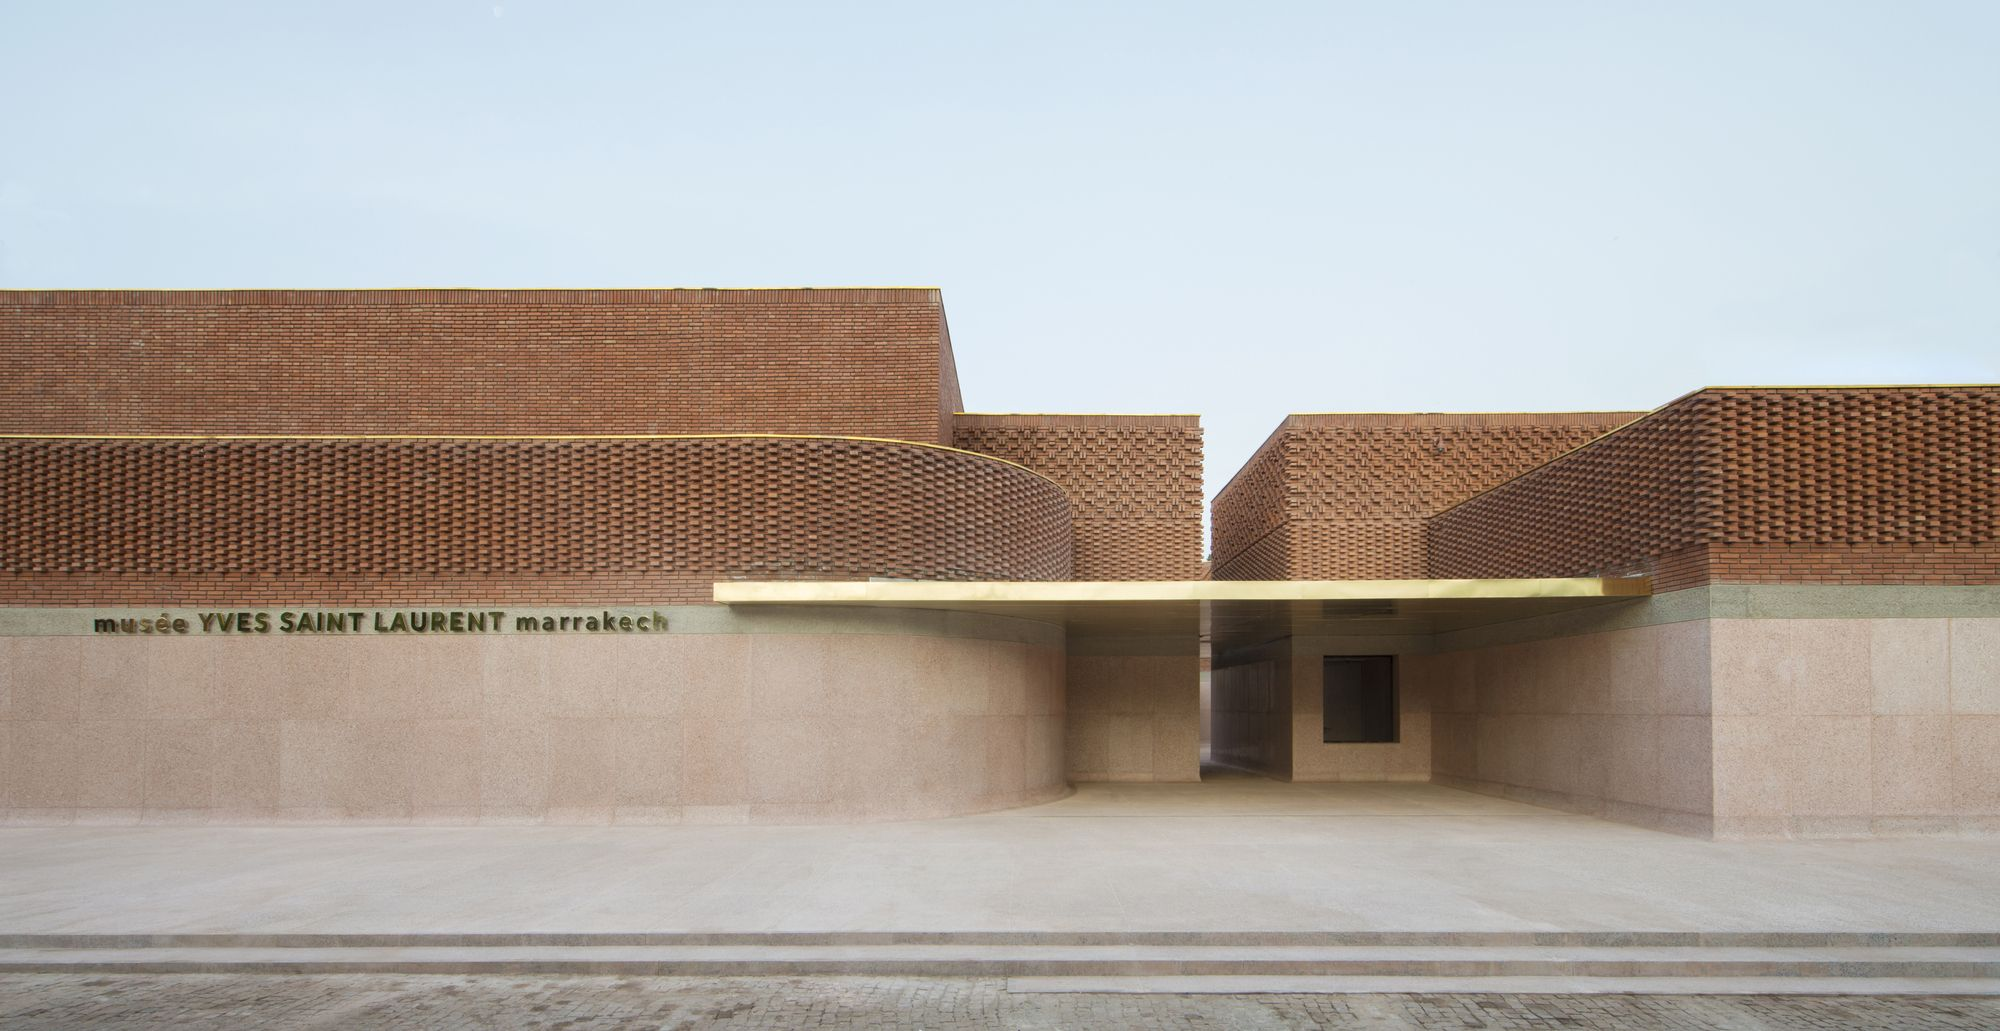 Image 1 of 5 from gallery of Studio KO's Yves Saint Laurent Museum Opens in Marrakech. musée YVES SAINT LAURENT marrakech. Image © Nicolas Mathéus